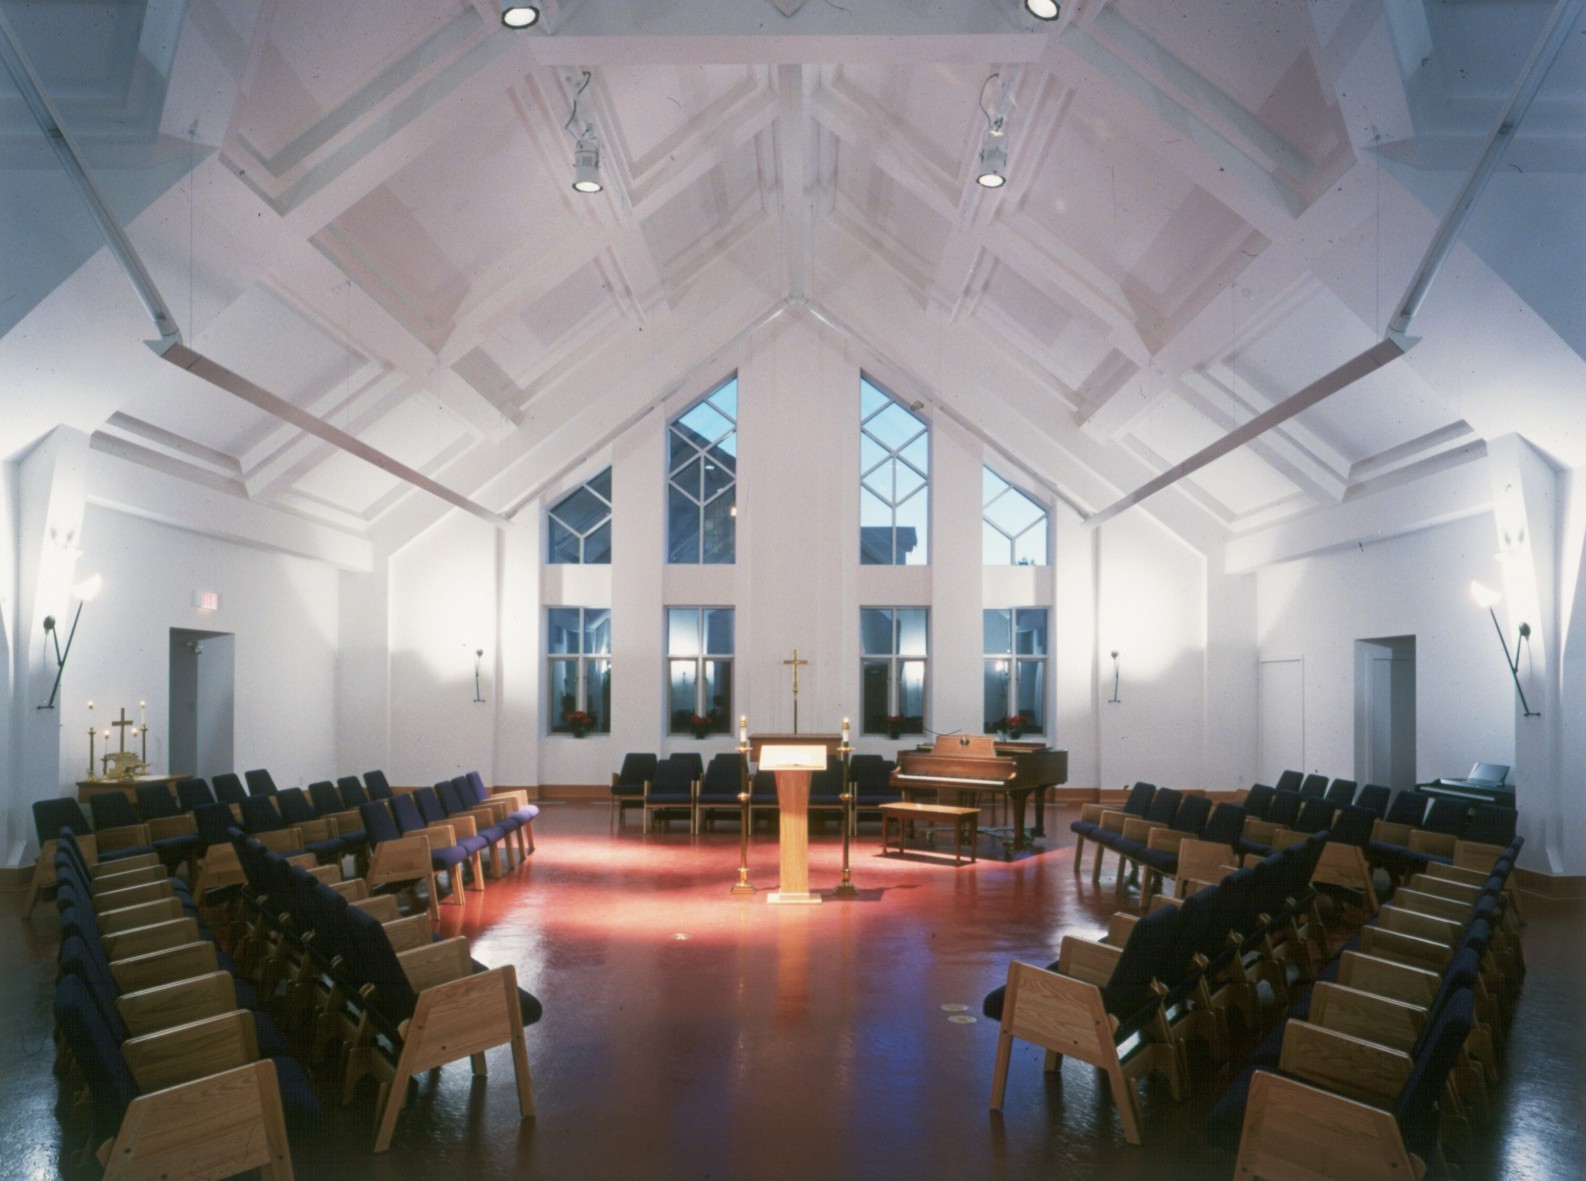 st church design valley interior architecture photographic harrison pin center sacred bartholomew